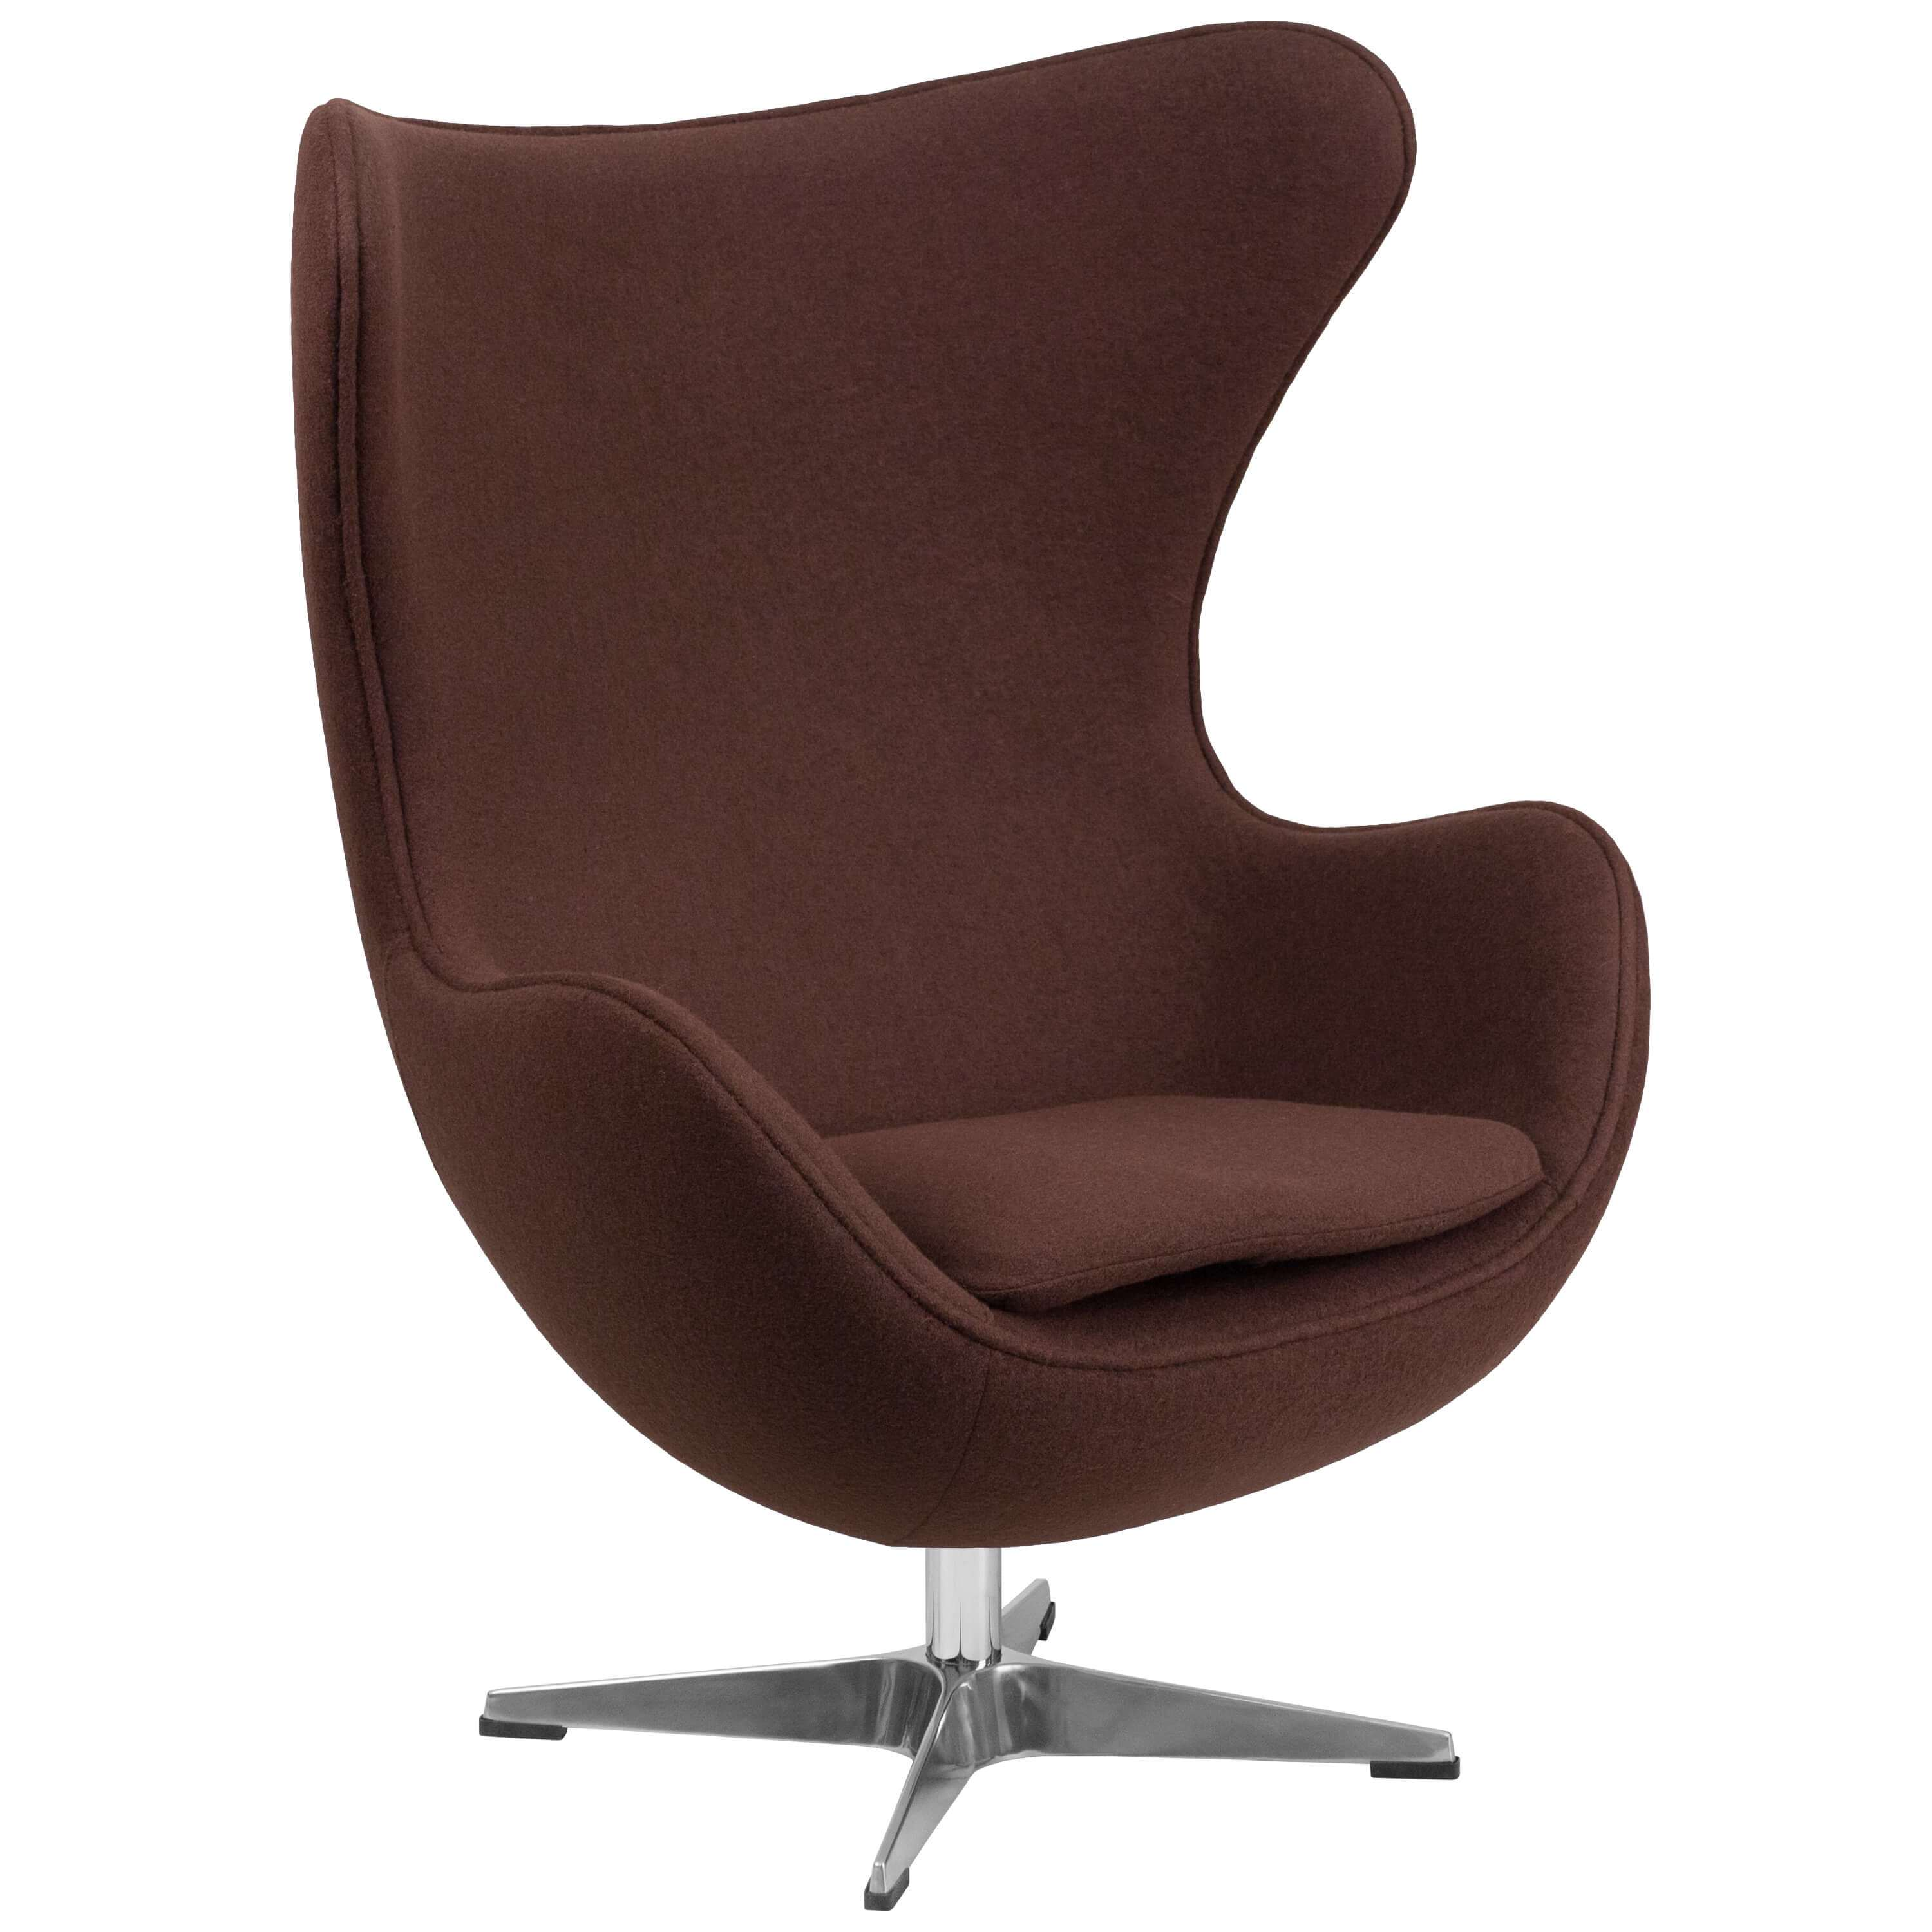 Office lounge chairs CUB ZB 13 GG ALF